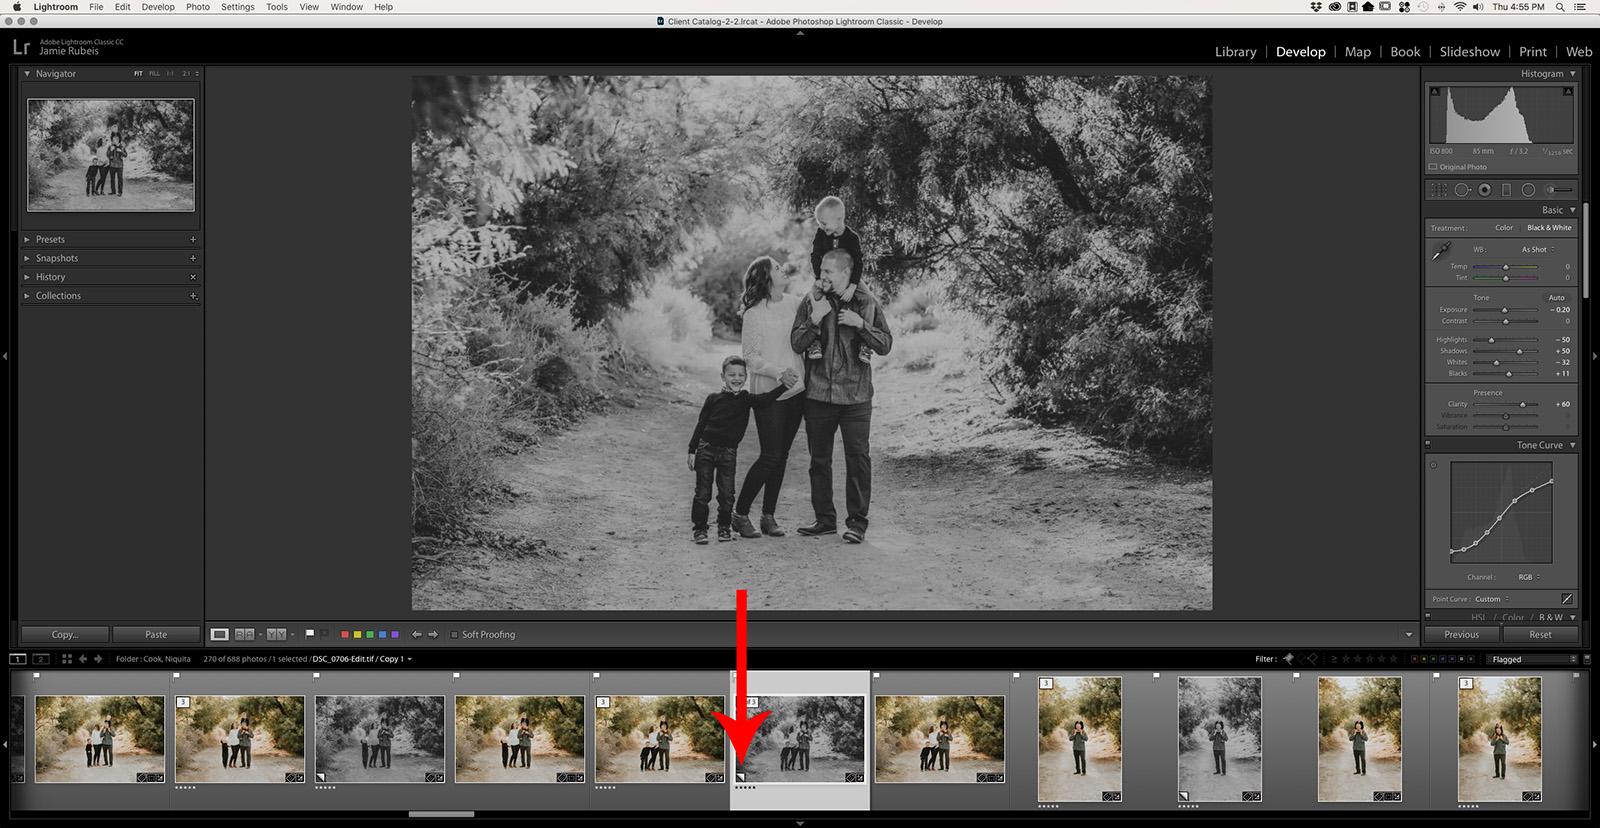 Lightroom offers plenty of flexibility when it comes to saving various versions of one image which often generates some confusion among its users.